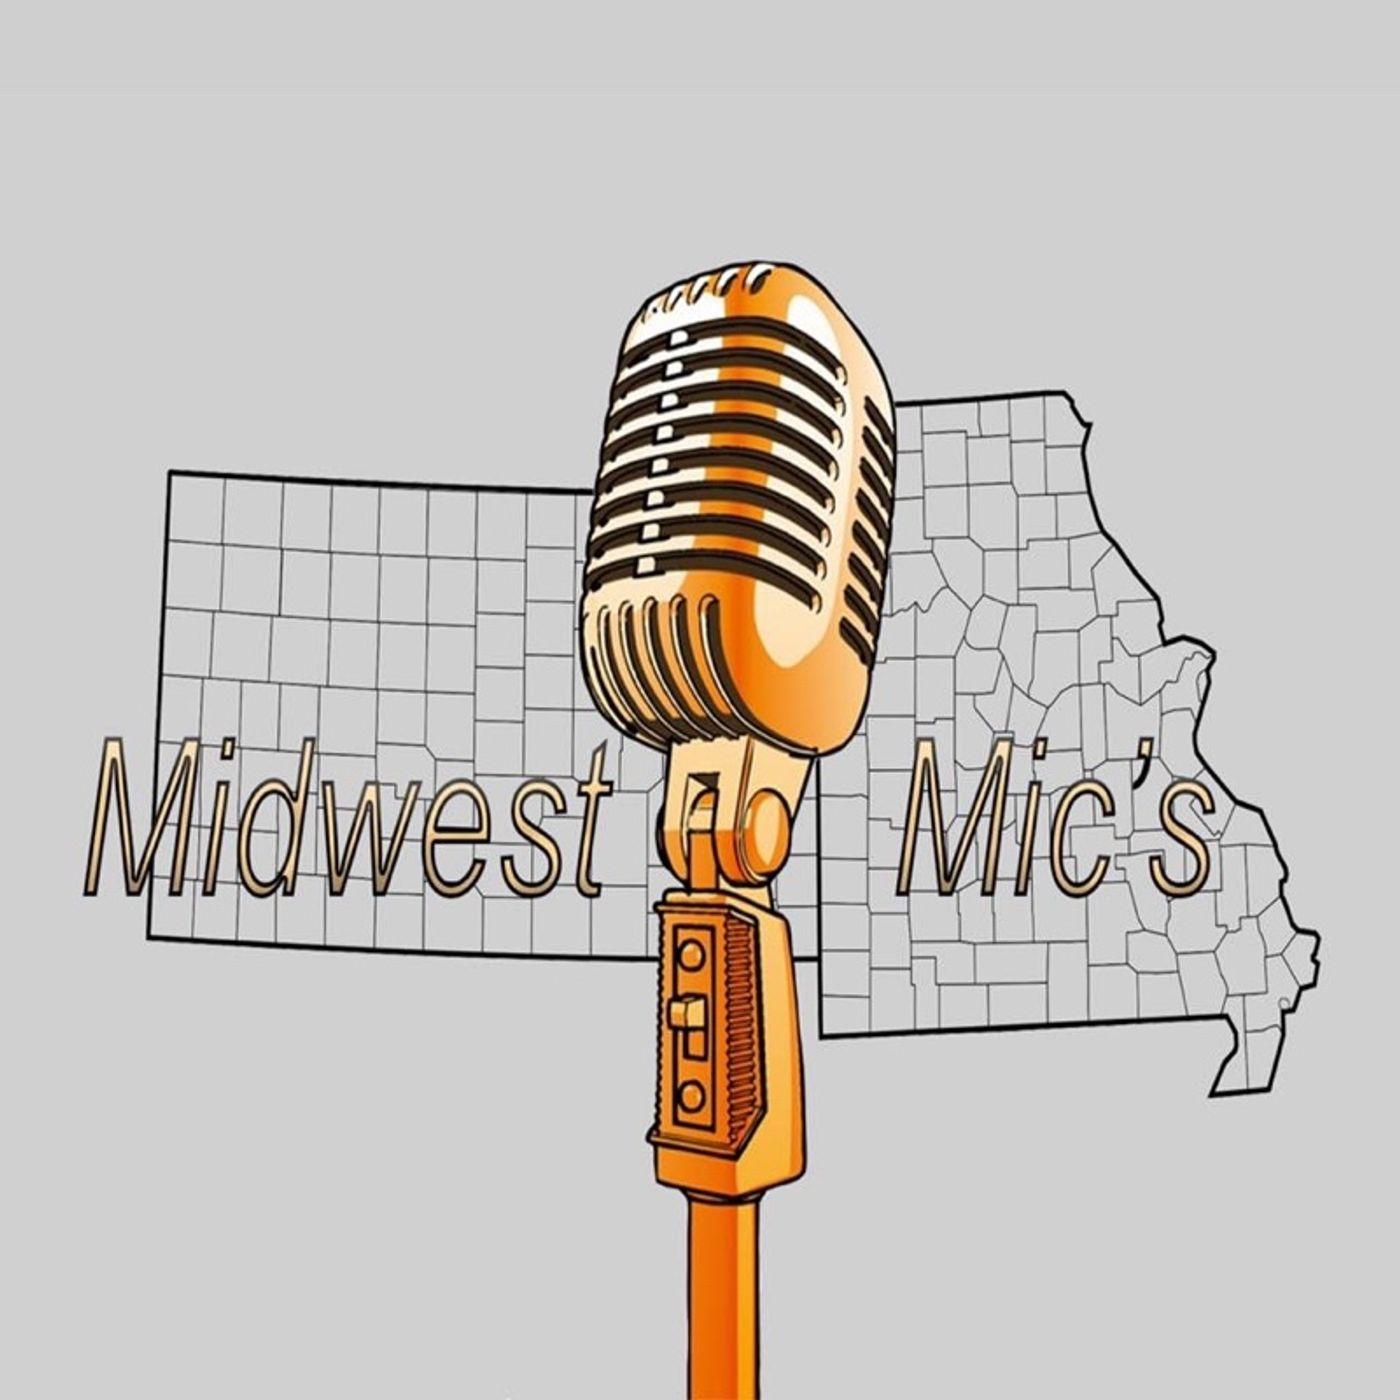 Midwest Mic's Quick Bets 5/3